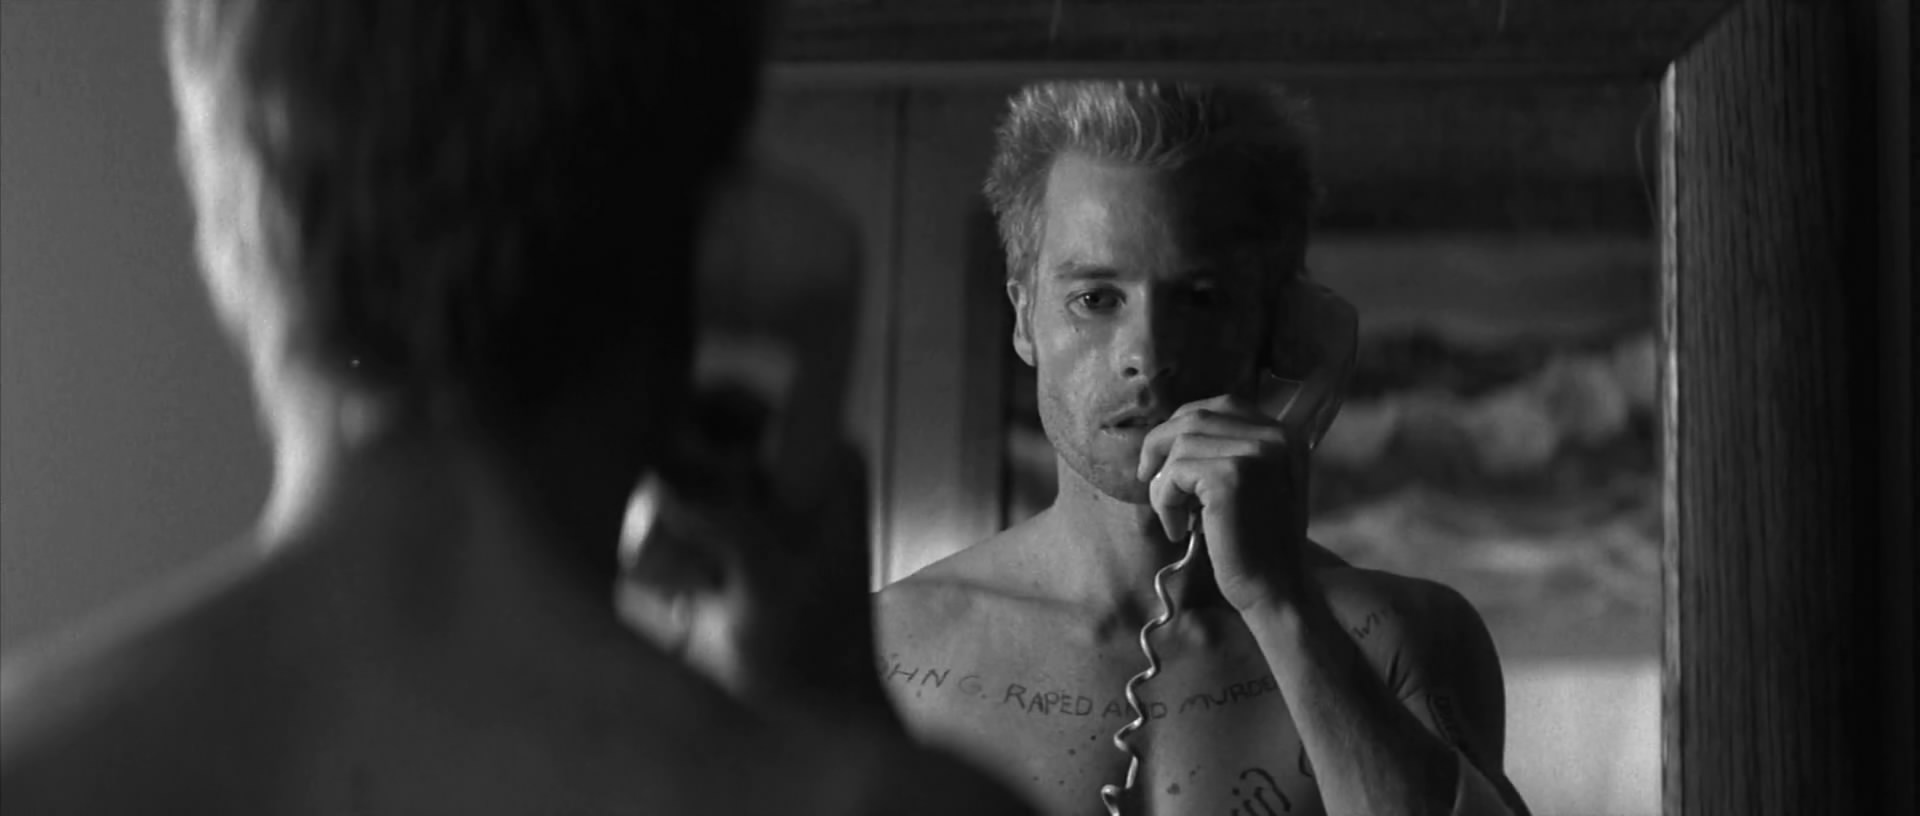 memento full movie download hd popcorn